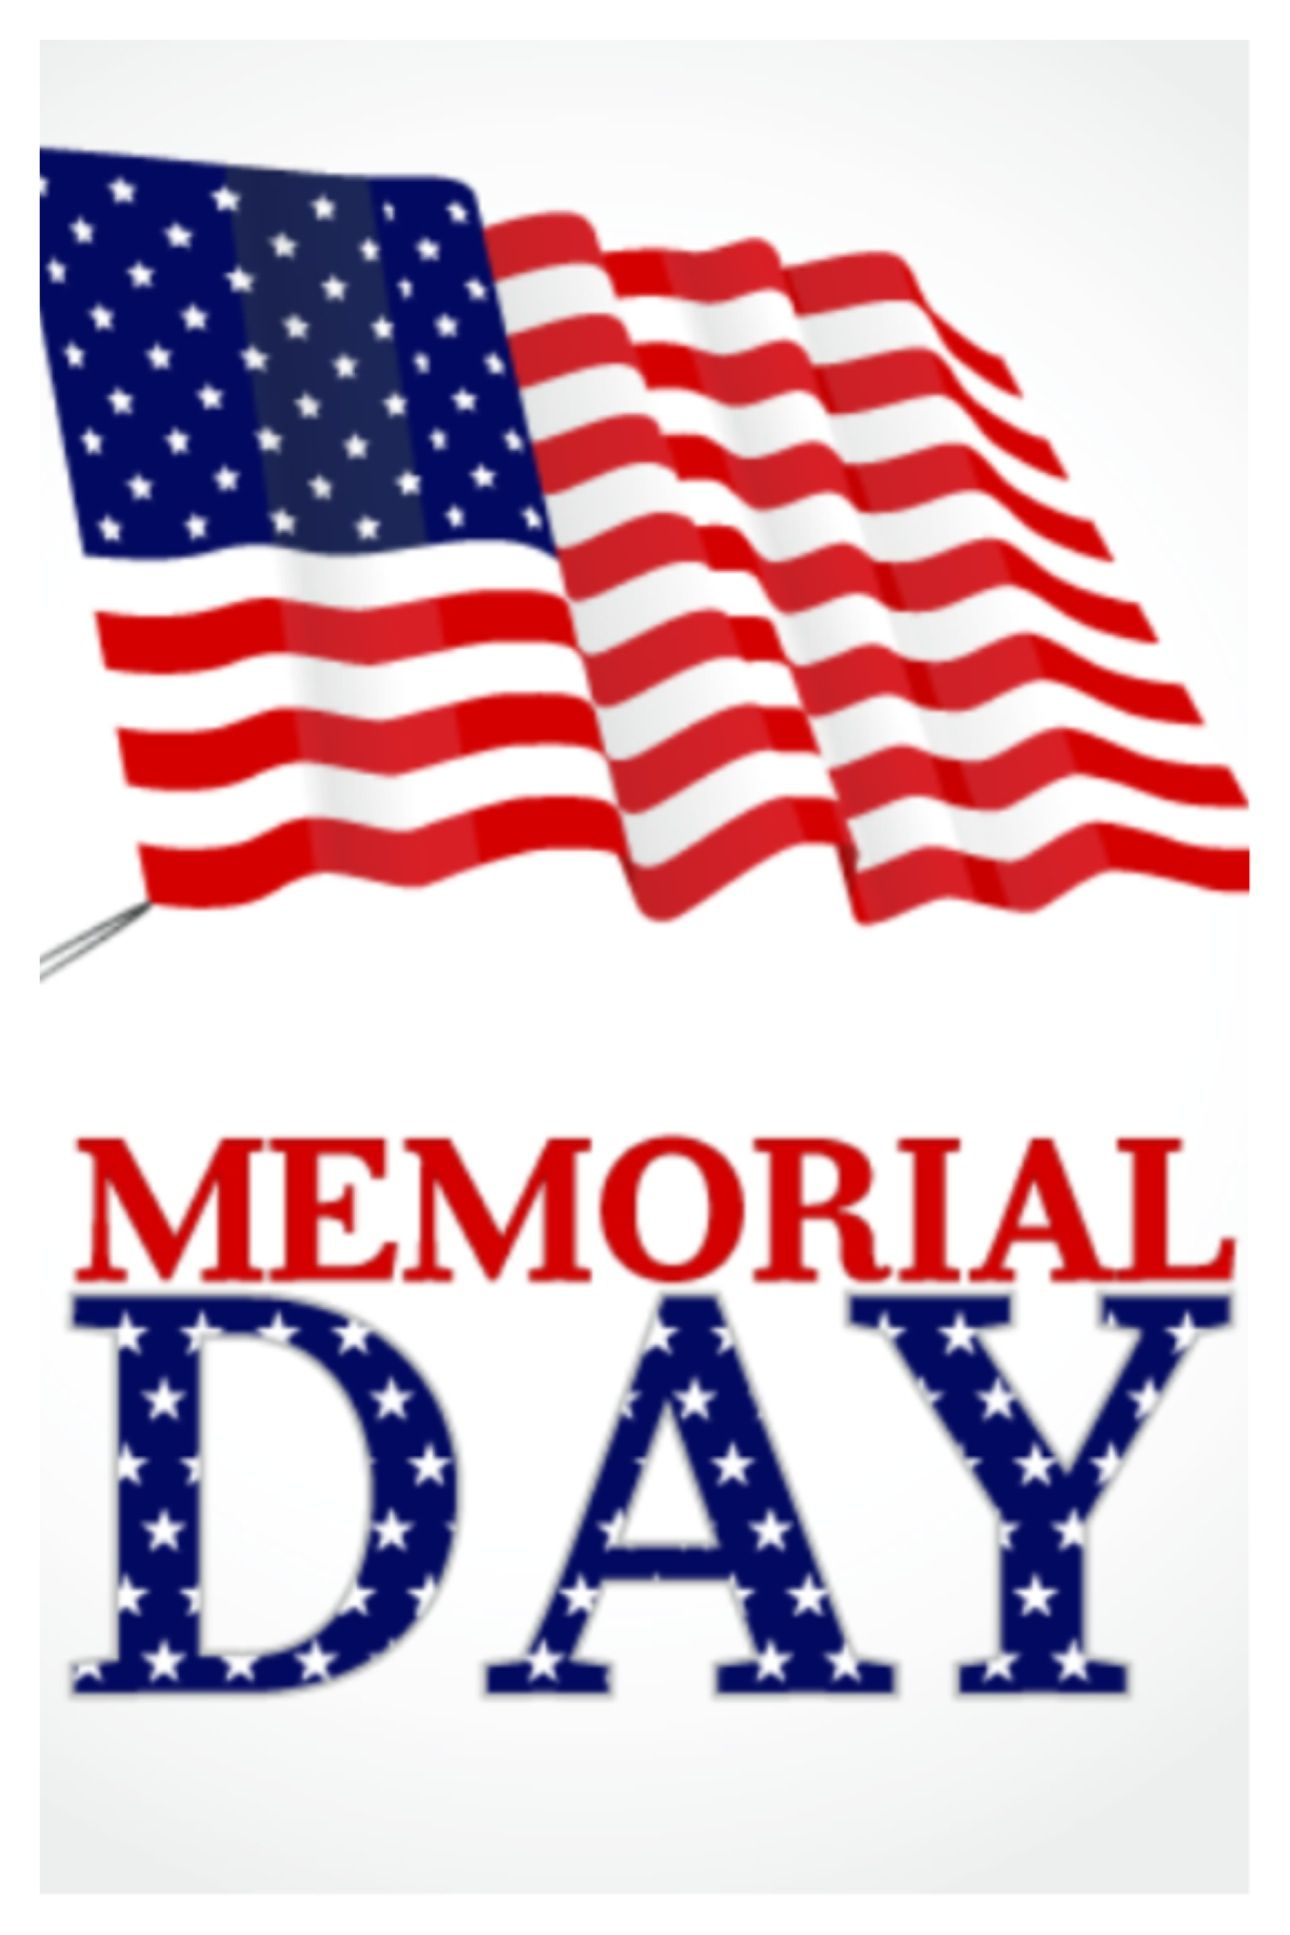 Memorial Day Memorial Day Pictures Memorial Day Thank You Memorial Day Quotes